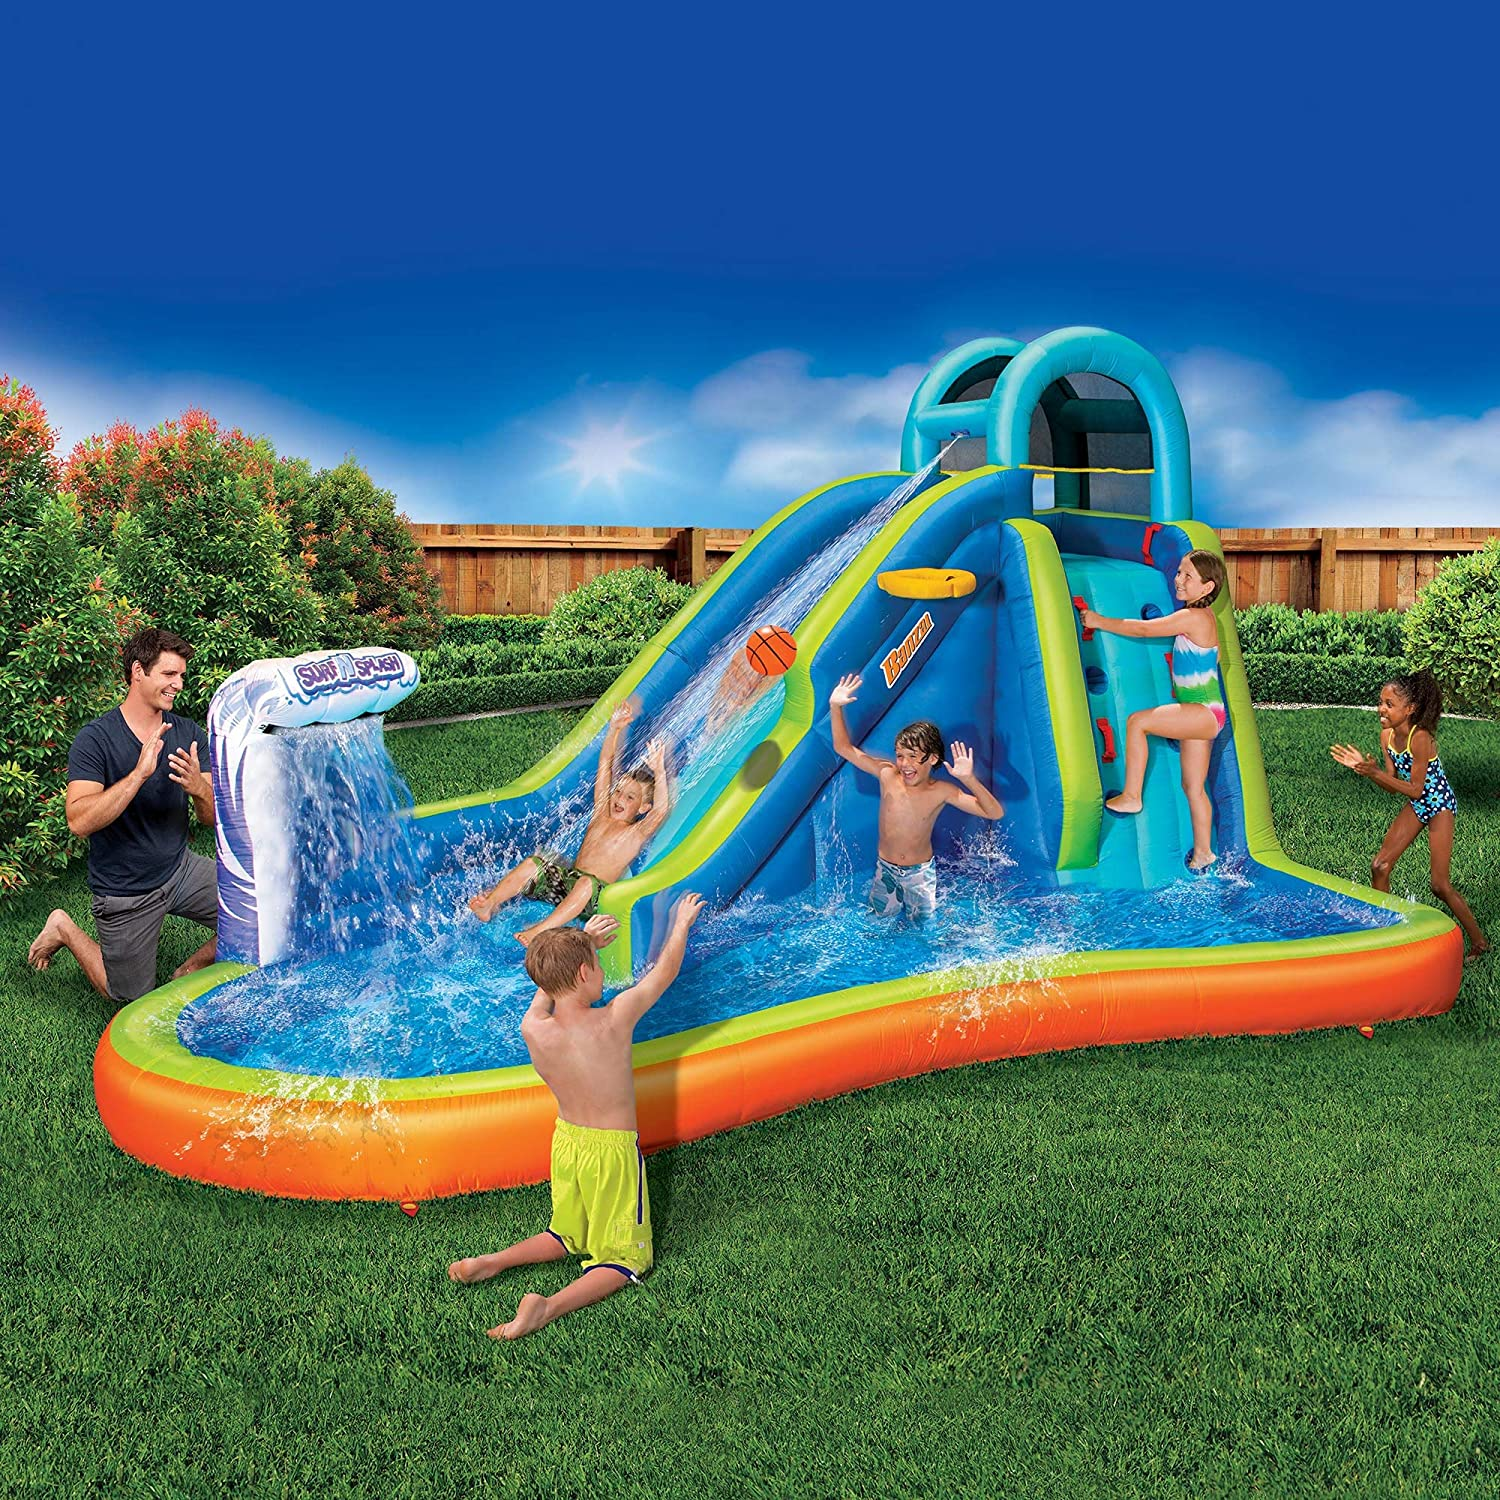 Top 7 Best Water Slide Pools Inflatable Reviews in 2020 7